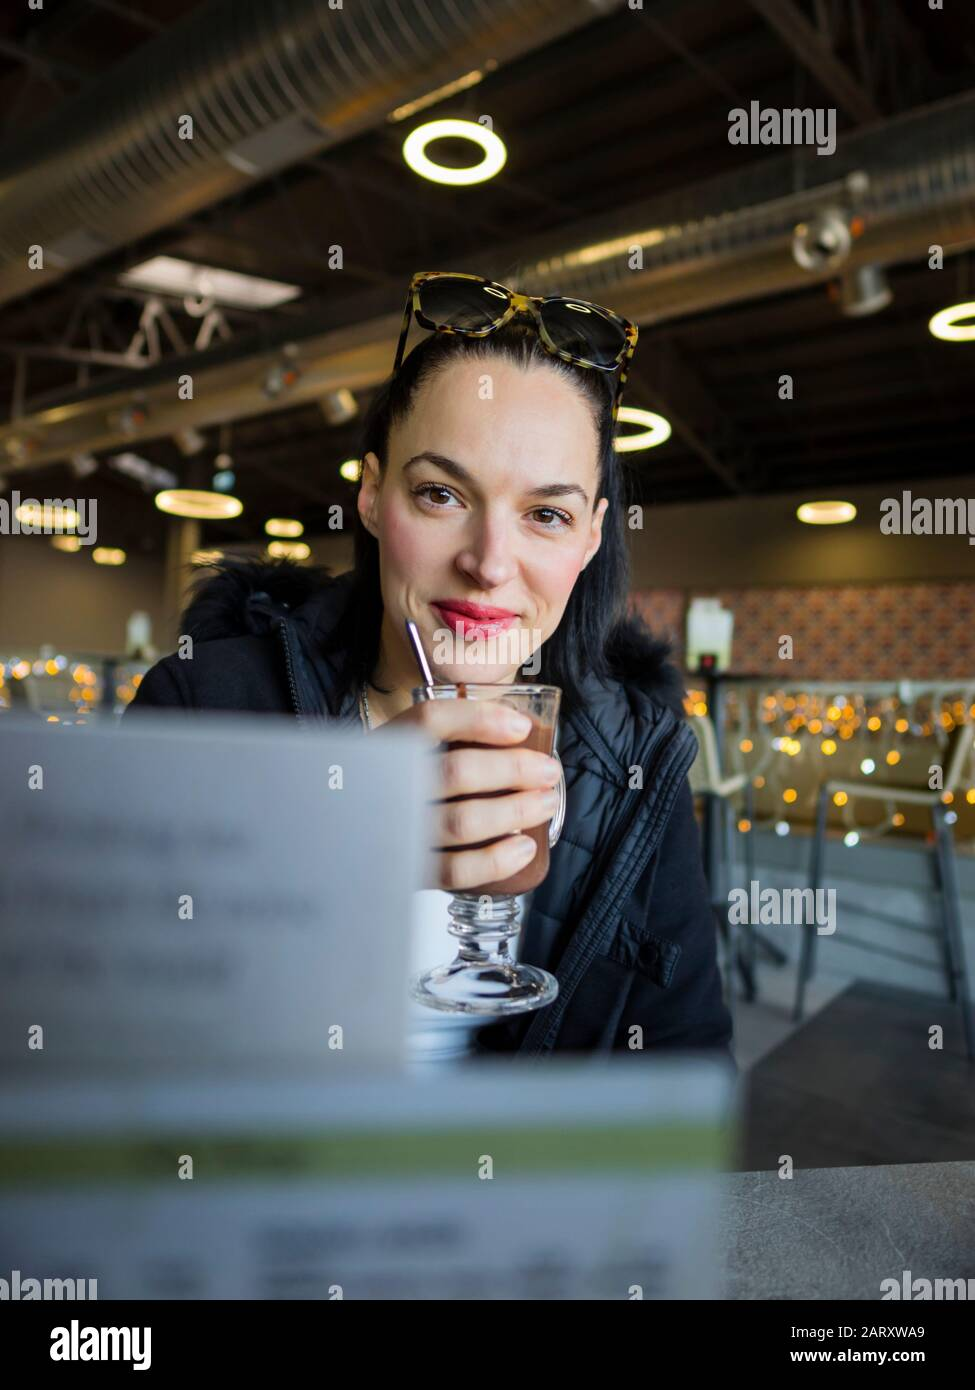 Drinking hot chocolate beverage smiling looking at camera sitting in bar behind price list Stock Photo